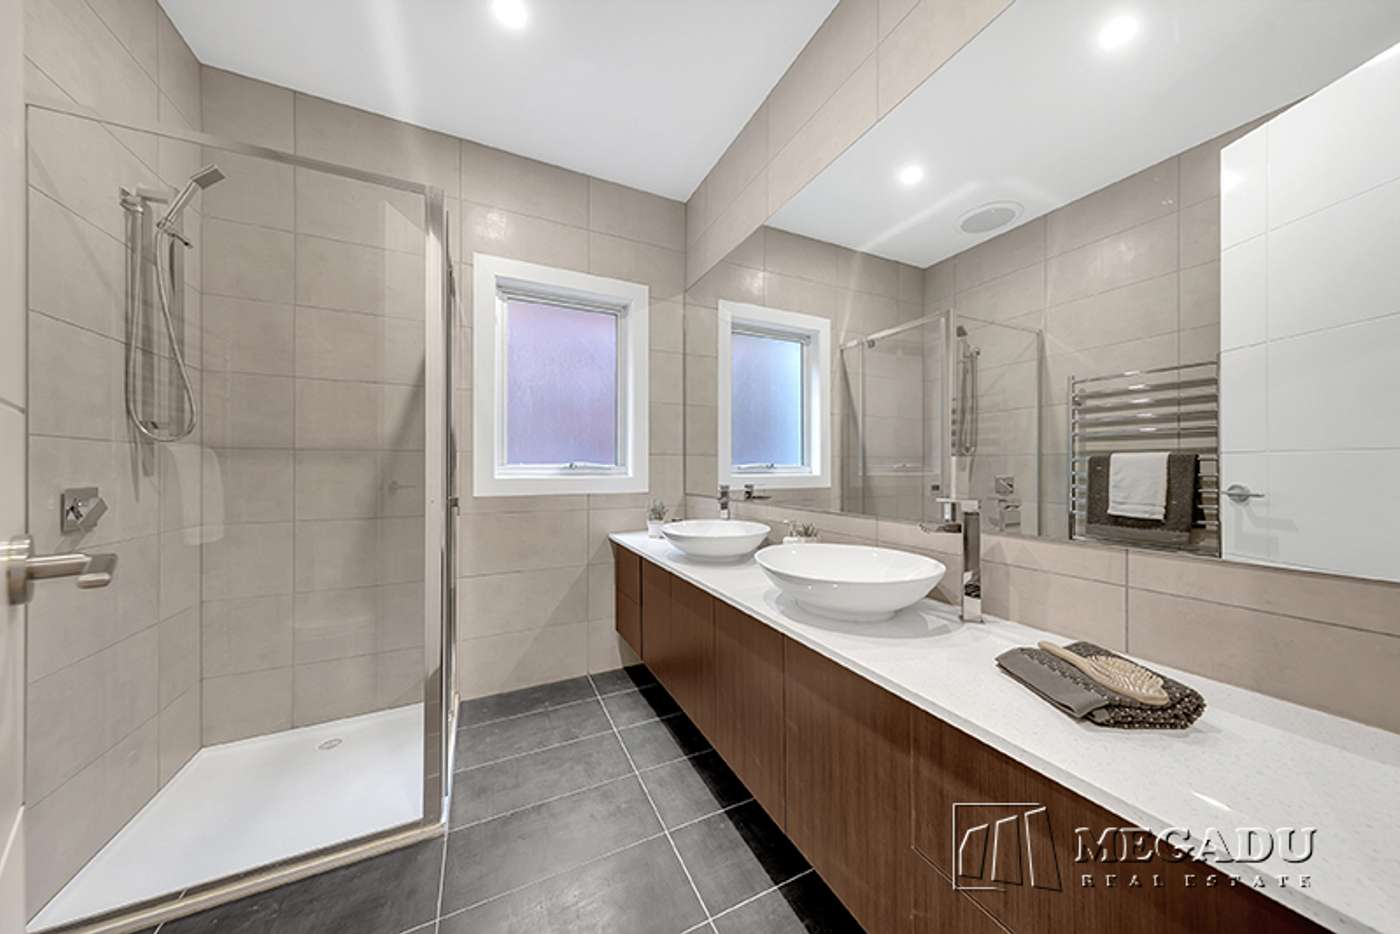 Fifth view of Homely house listing, 3 Kelso Street, Cremorne VIC 3121